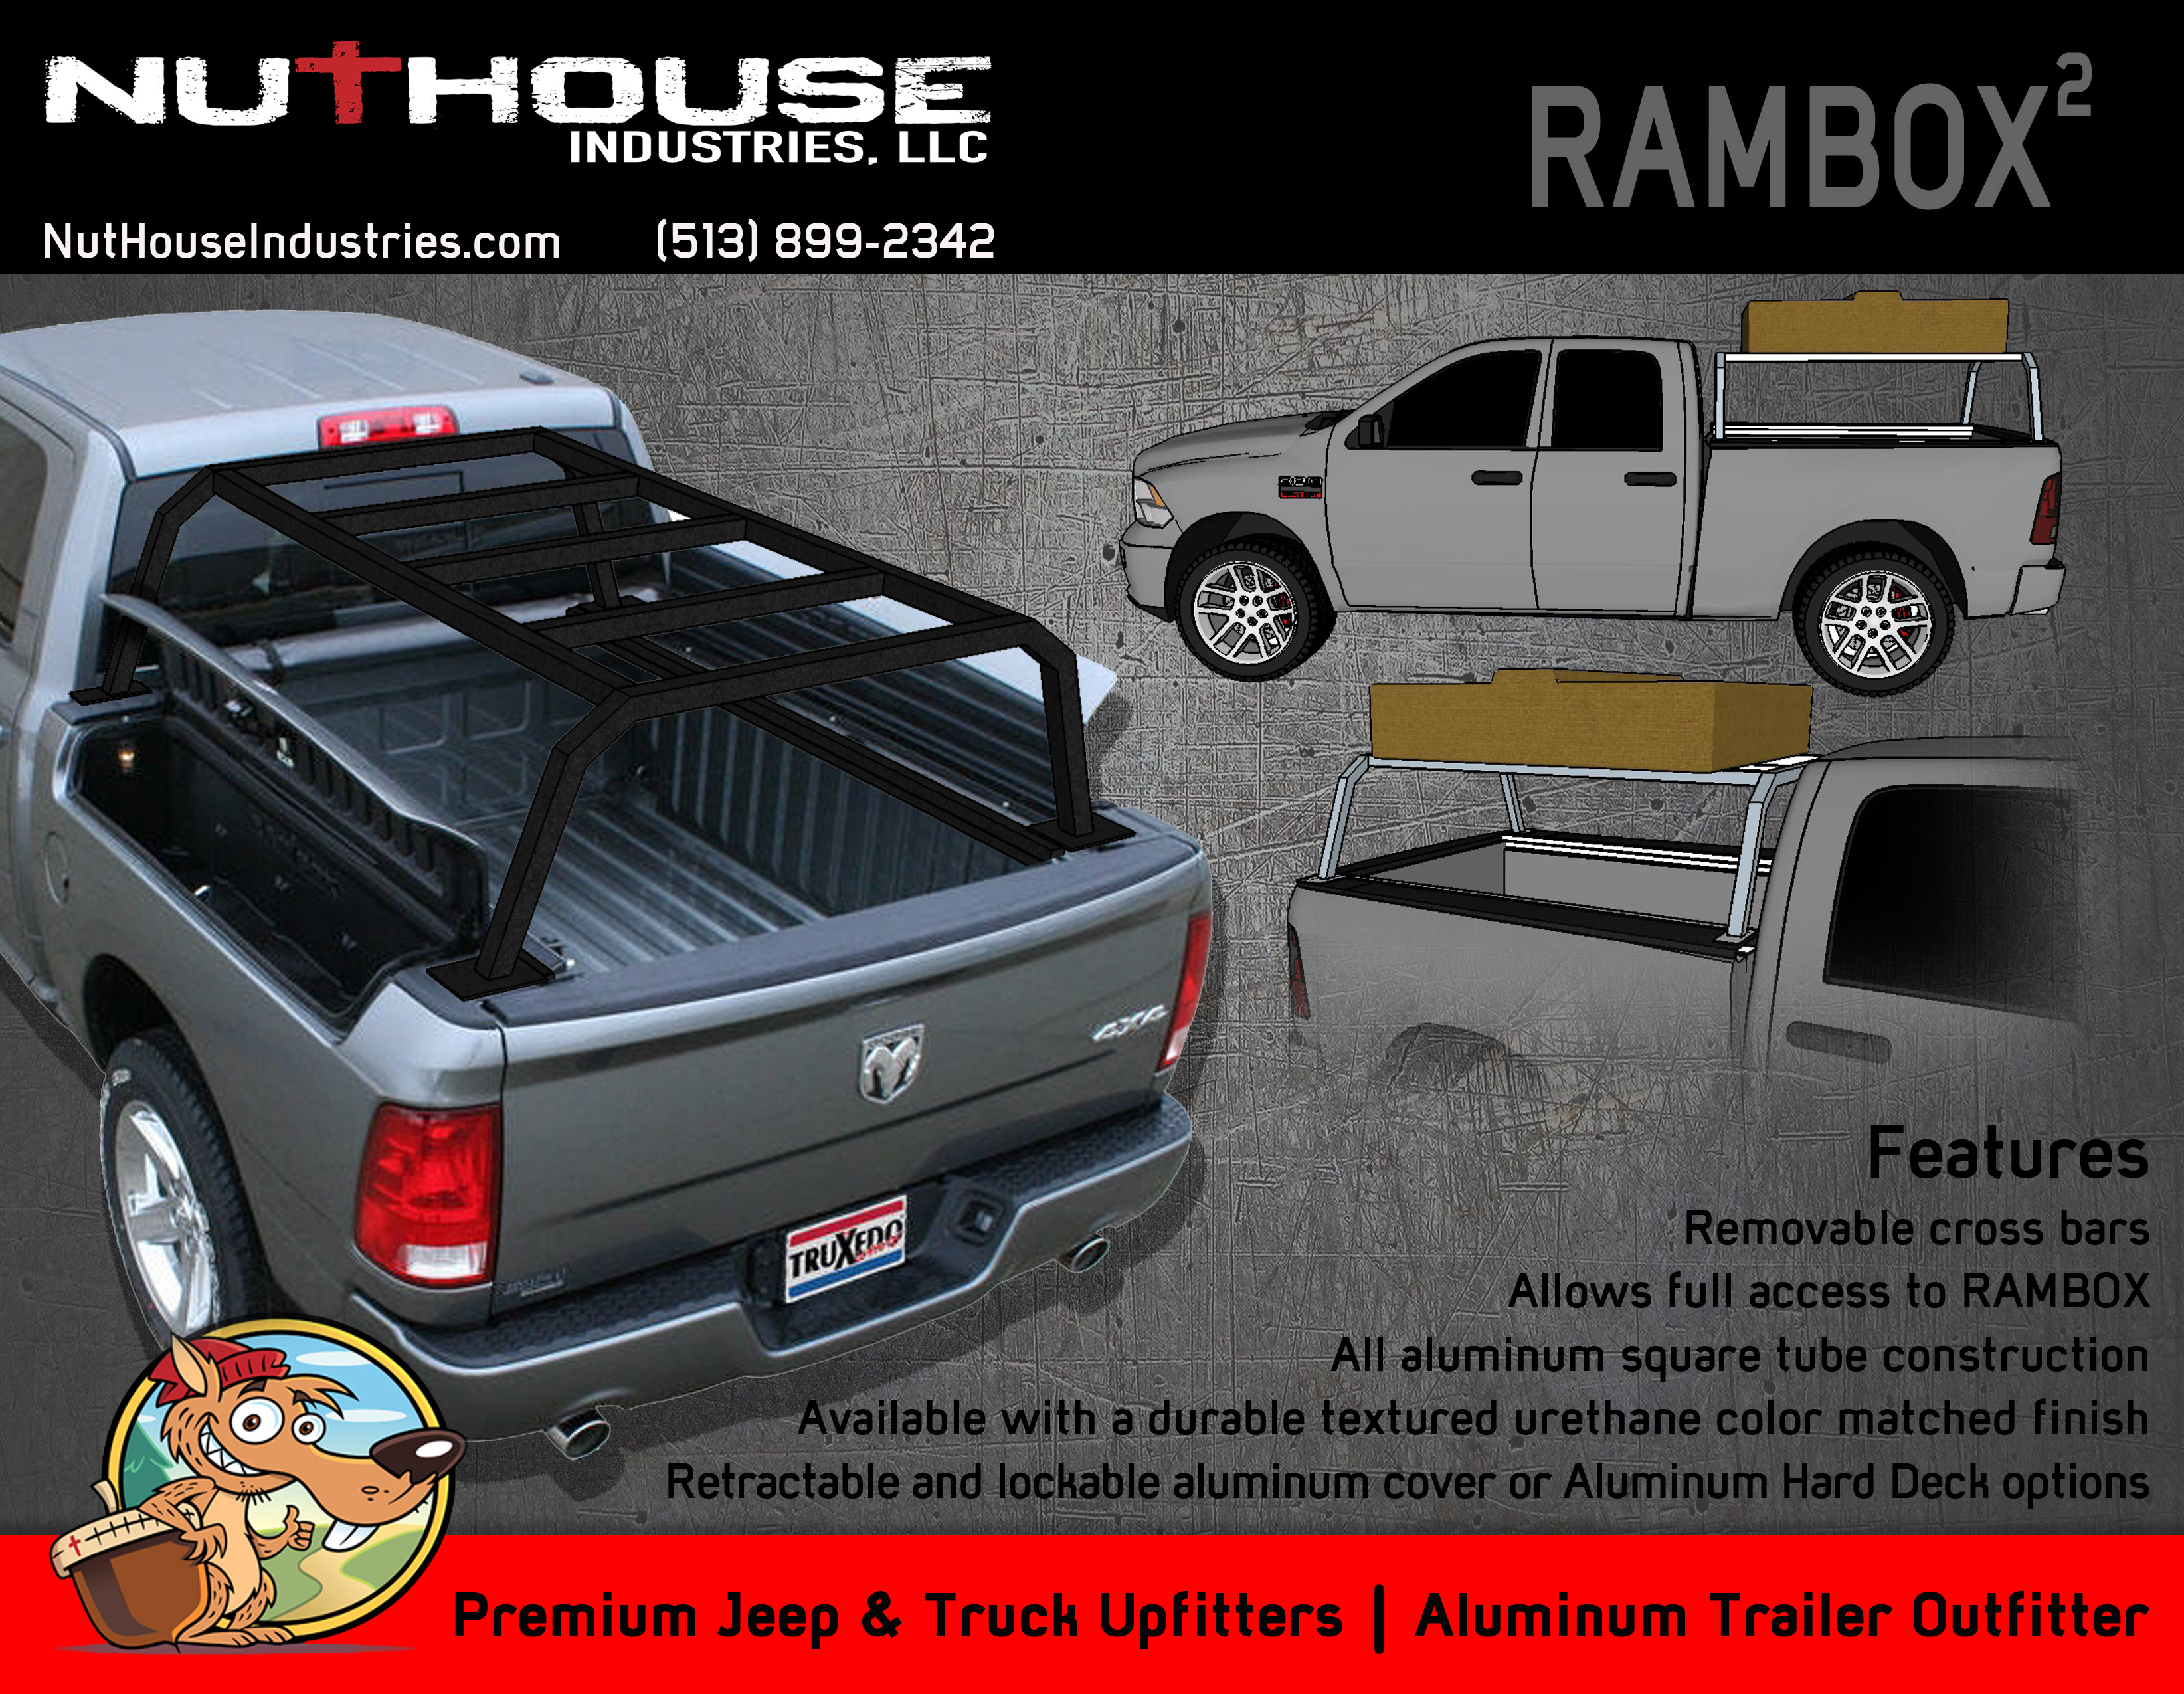 Nutzo Rambox Series Expedition Truck Bed Rack Nuthouse